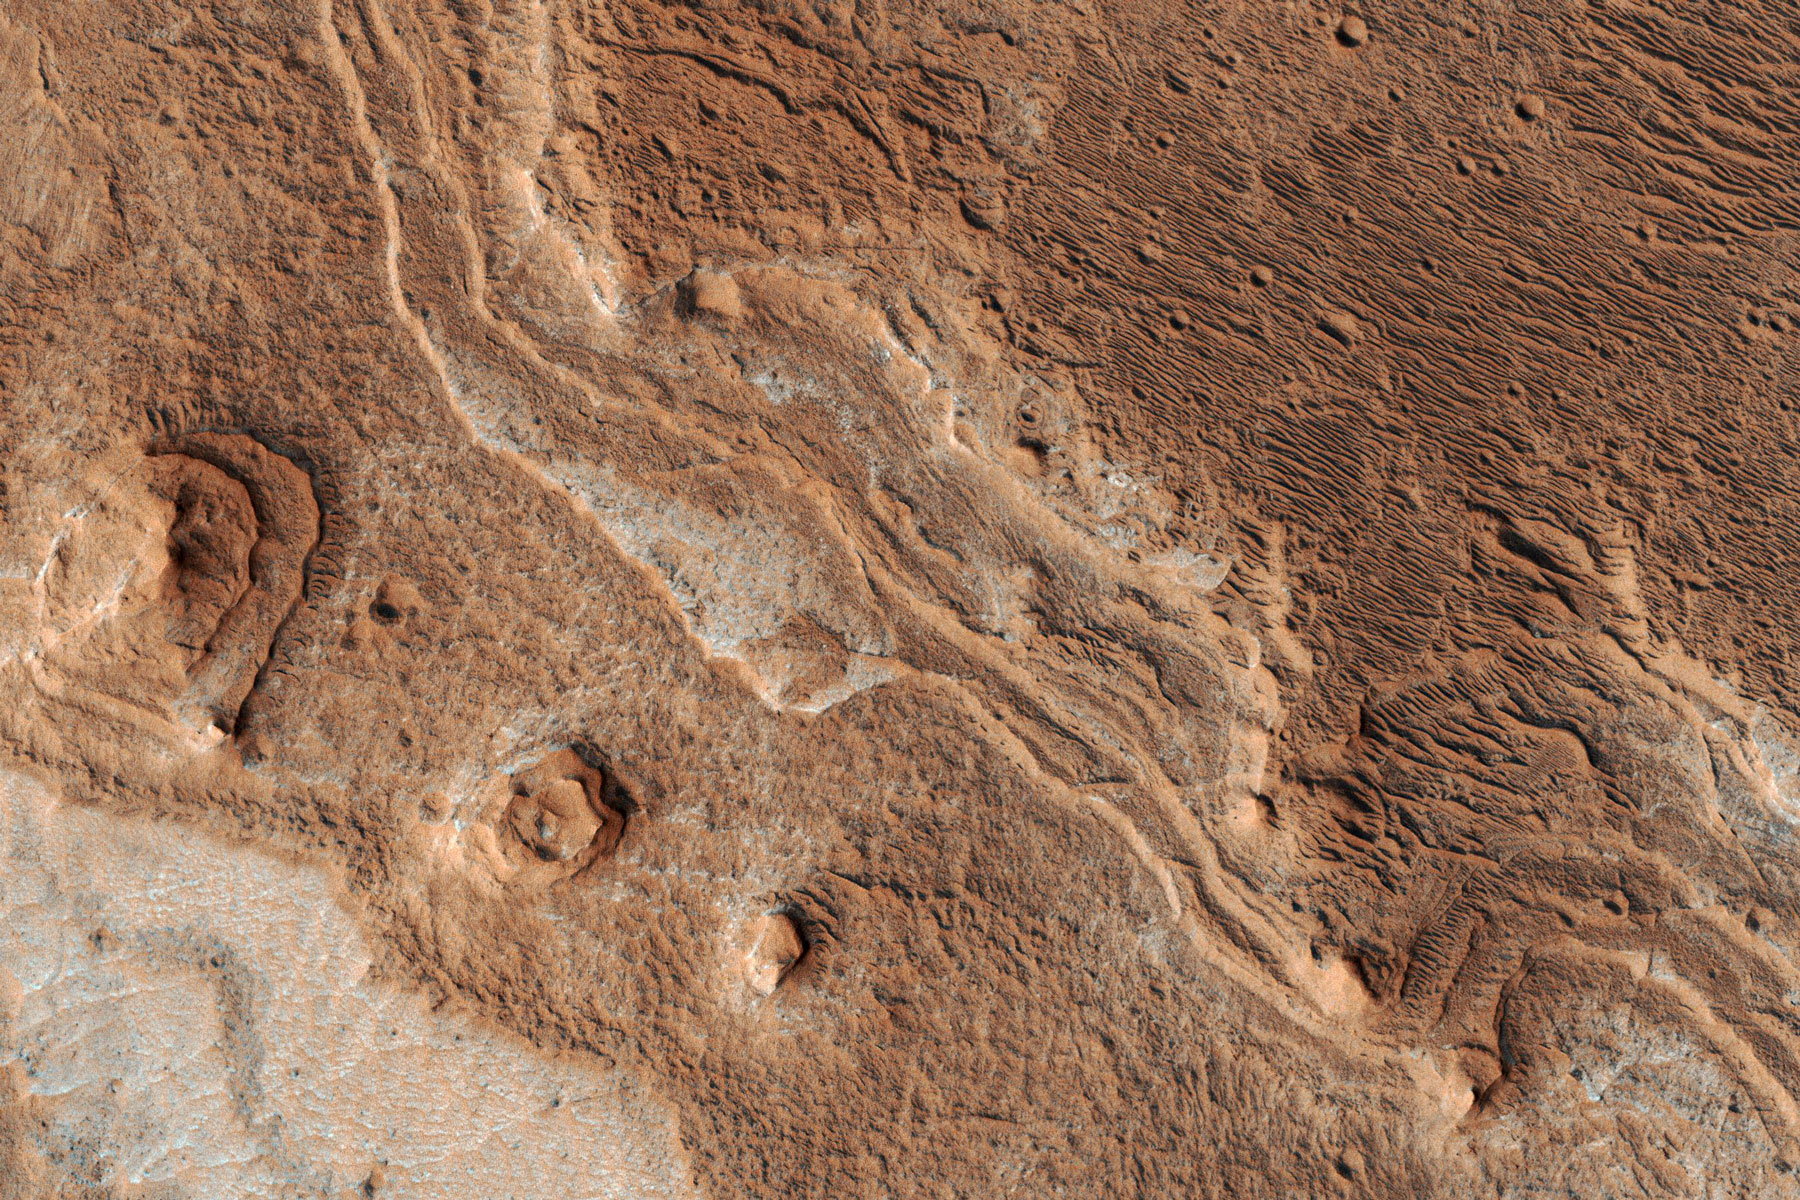 eroded layers in Shalbatana Valles, Mars